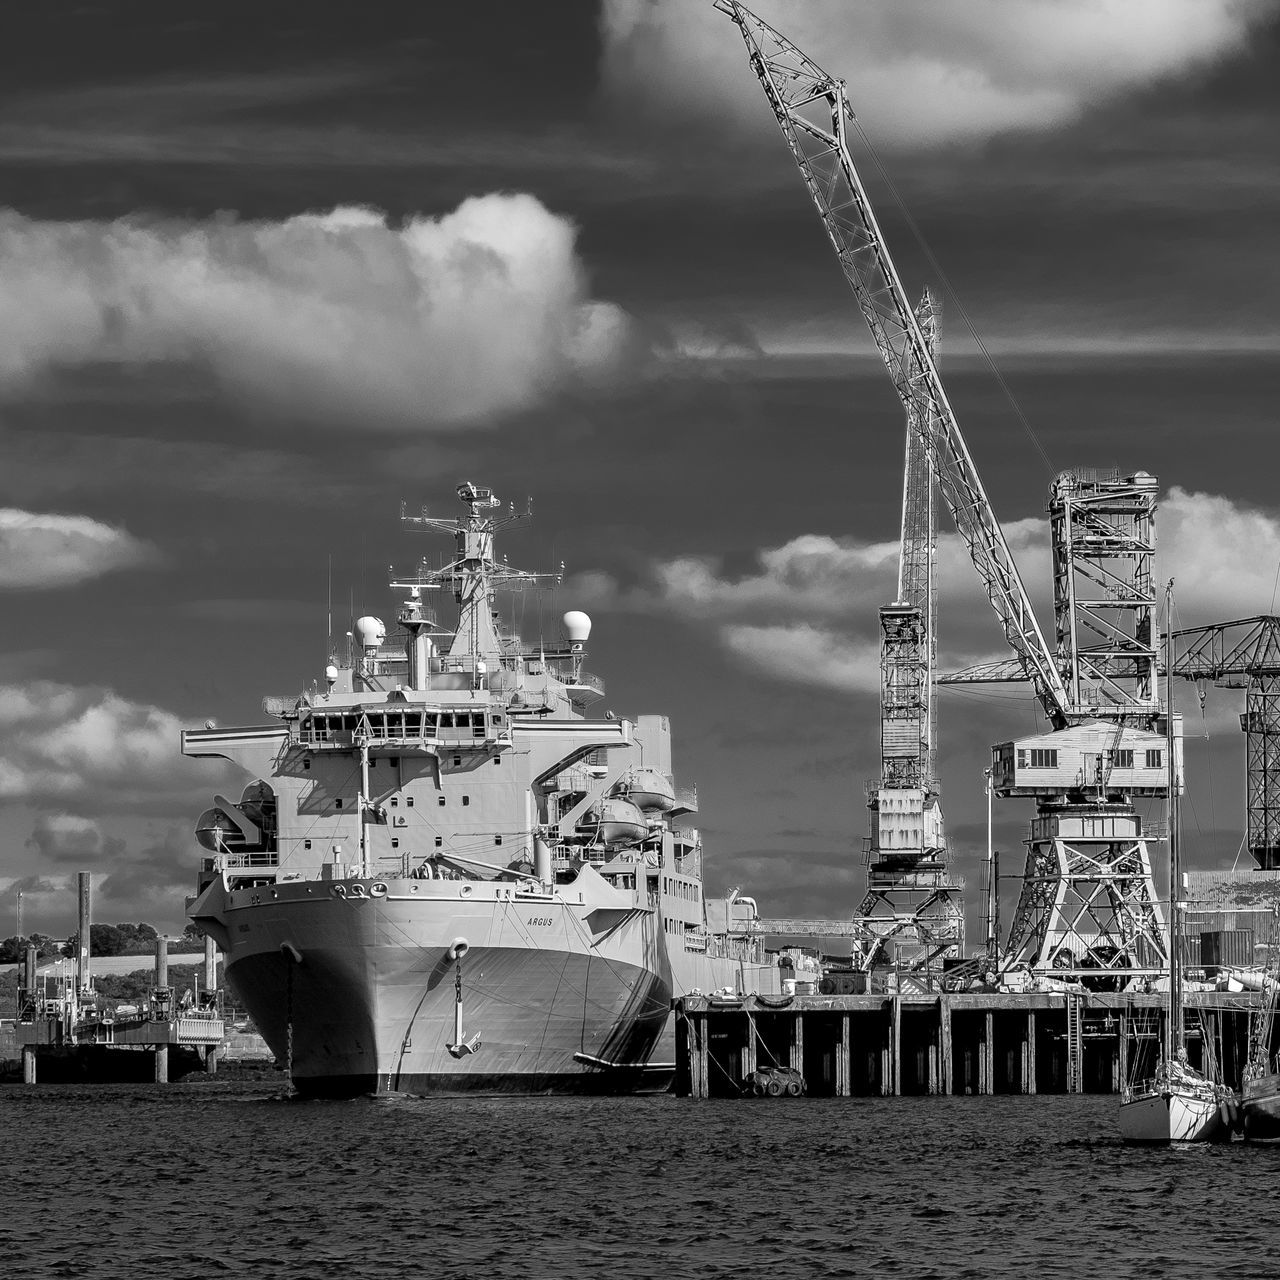 cloud - sky, sky, nautical vessel, water, transportation, industry, built structure, crane - construction machinery, mode of transport, architecture, harbor, outdoors, sea, building exterior, no people, freight transportation, day, commercial dock, shipyard, nature